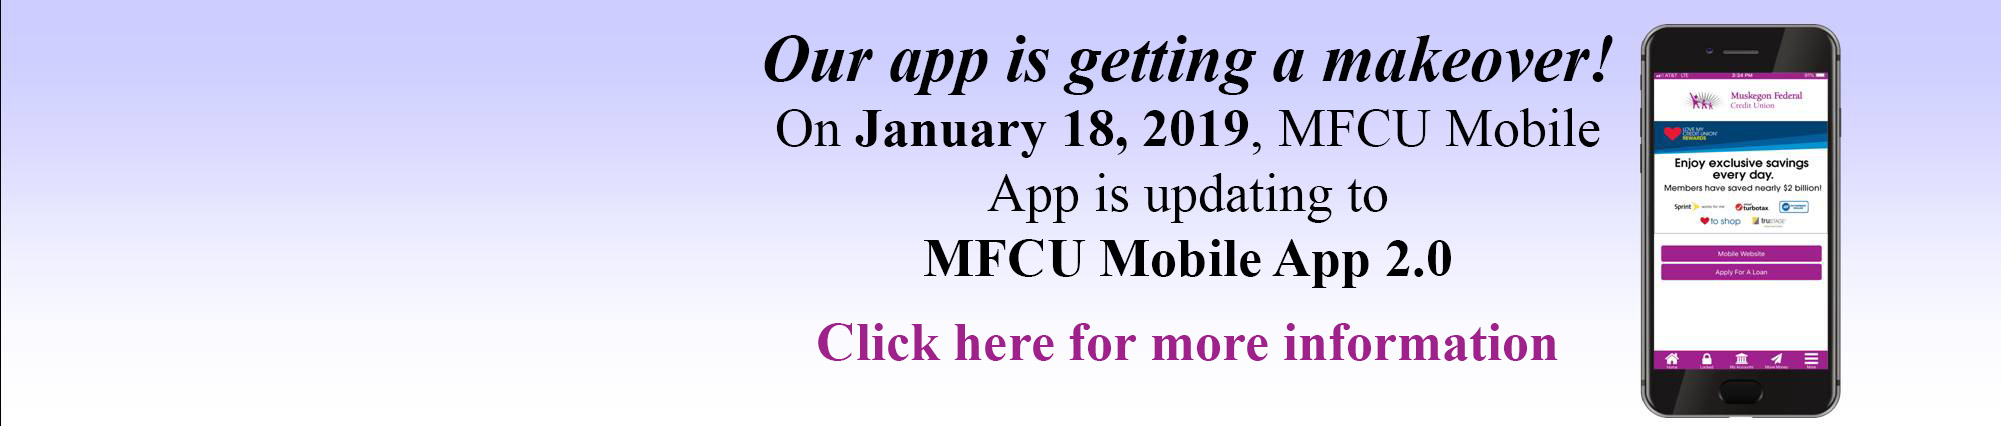 OUR APP IS GETTING A MAKEOVER. ON JANUARY 18